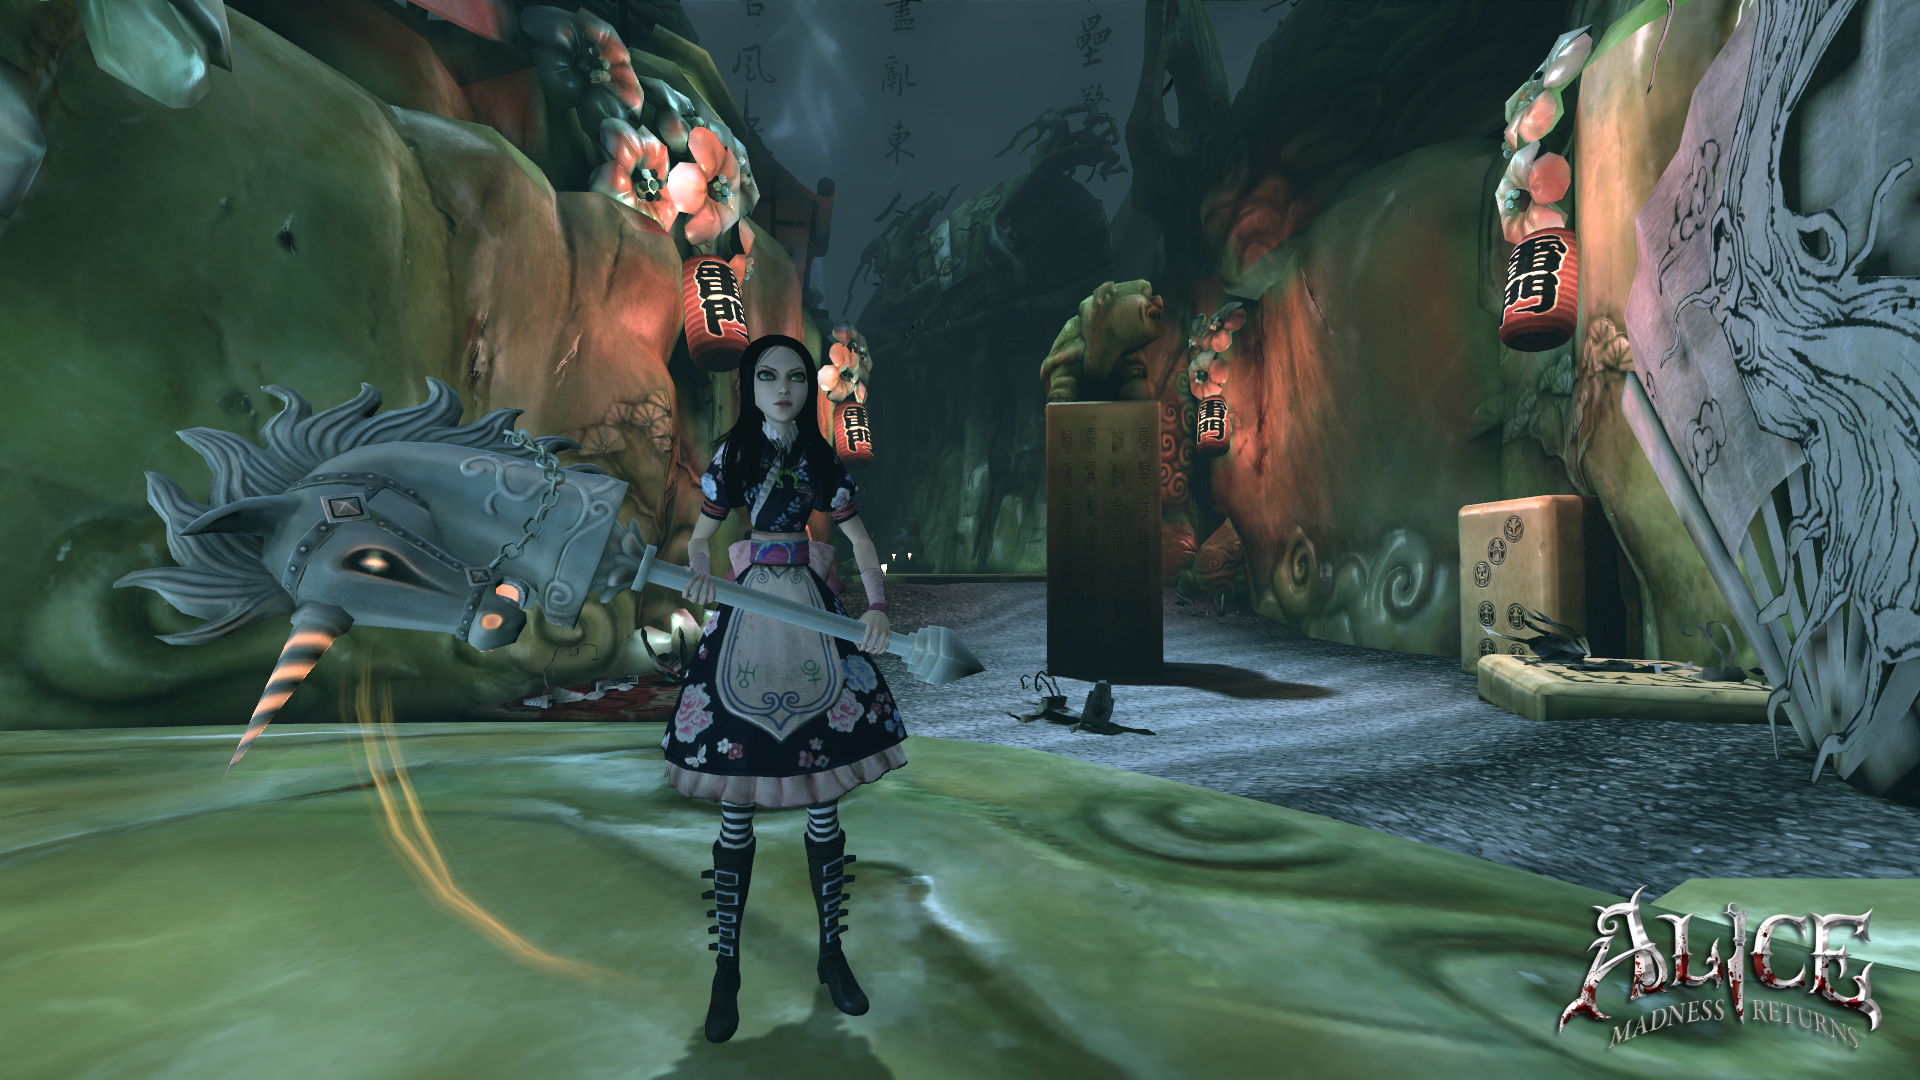 Media asset in full size related to 3dfxzone.it news item entitled as follows: Da Electronic Arts nuovi screenshots di Alice: Madness Returns | Image Name: news14971_2.jpg